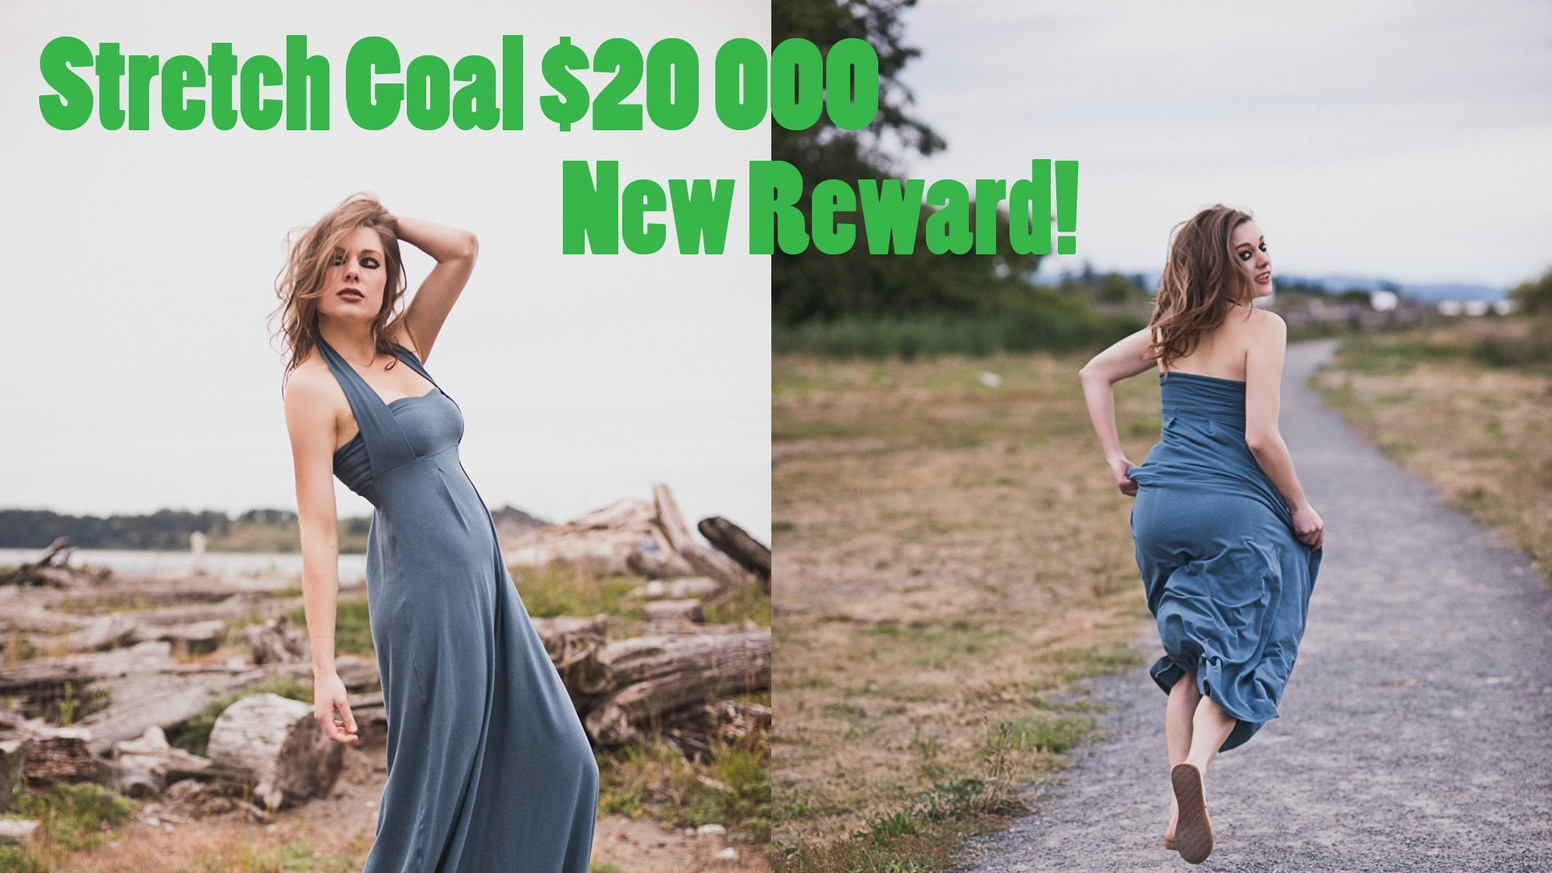 Wearable, Beautiful, Move-in-it-able Eco-friendly clothing for gorgeous modern women. Clothing that nourishes your lifestyle.